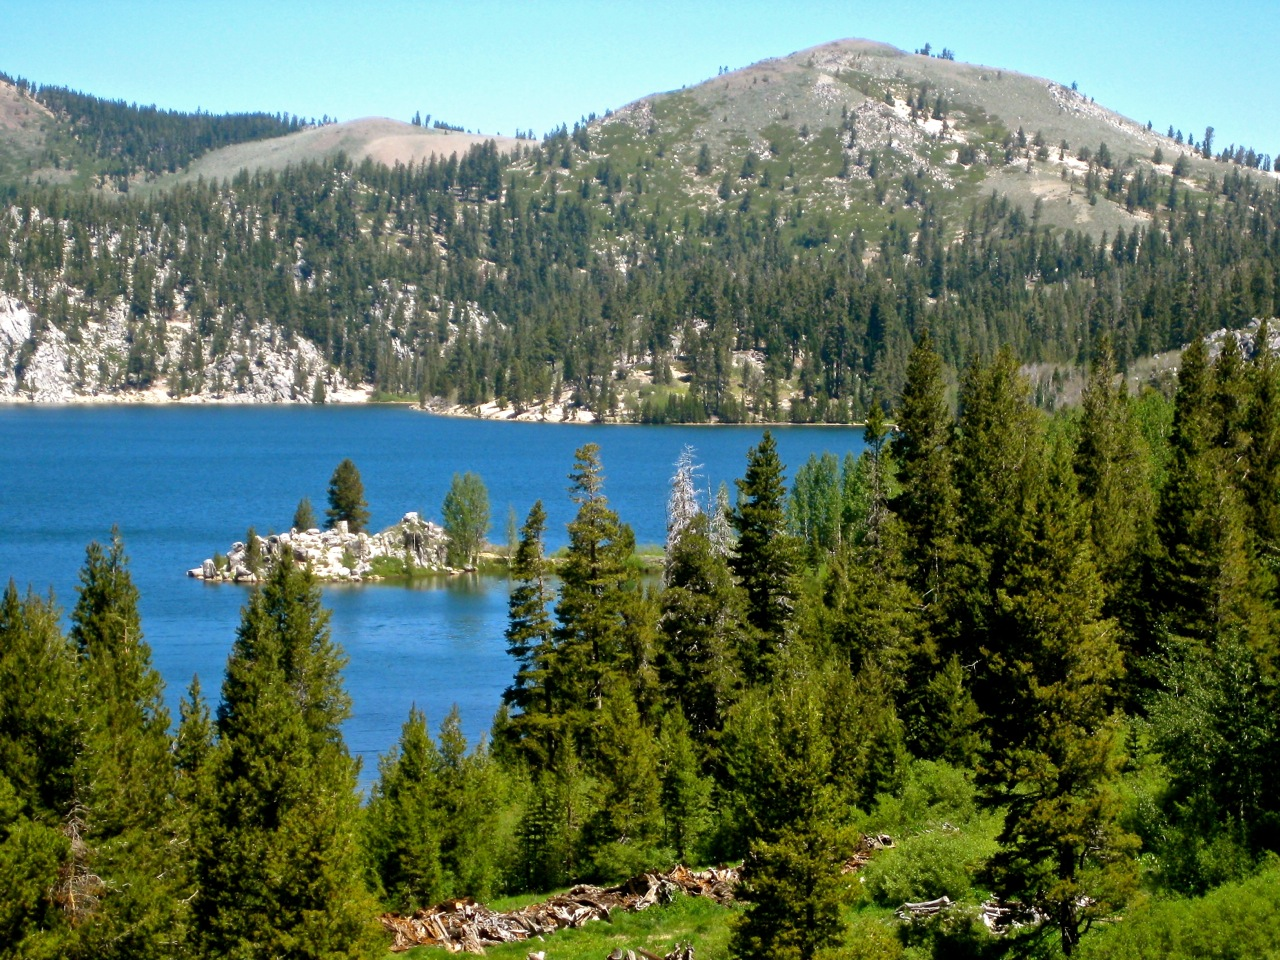 marlette lake trail map with Marlette Lake Trail Tahoe on Nevada Tunnel Creek And Marlette Lake together with Trailsbyregion further A View That Could Never Get Old additionally Spooner Lake Vistatrta Challenge 5 also Marlette Lake Trail Tahoe.